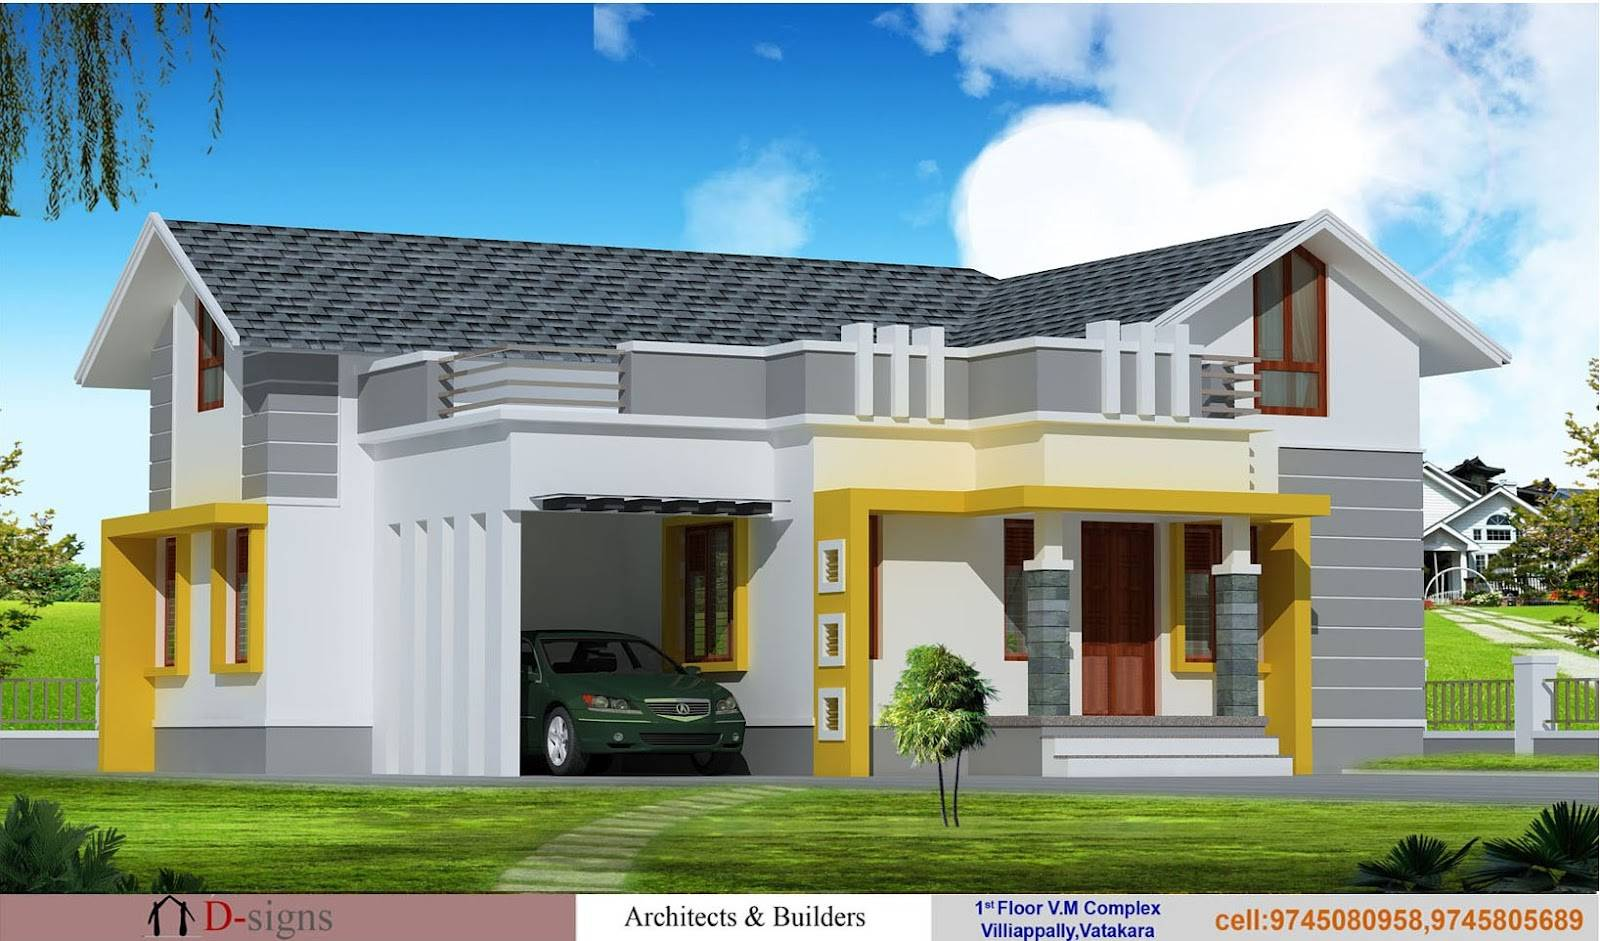 Single storey home flat roof future vertical expansion 6 social side - Good Beautiful Single Storey Home Designs